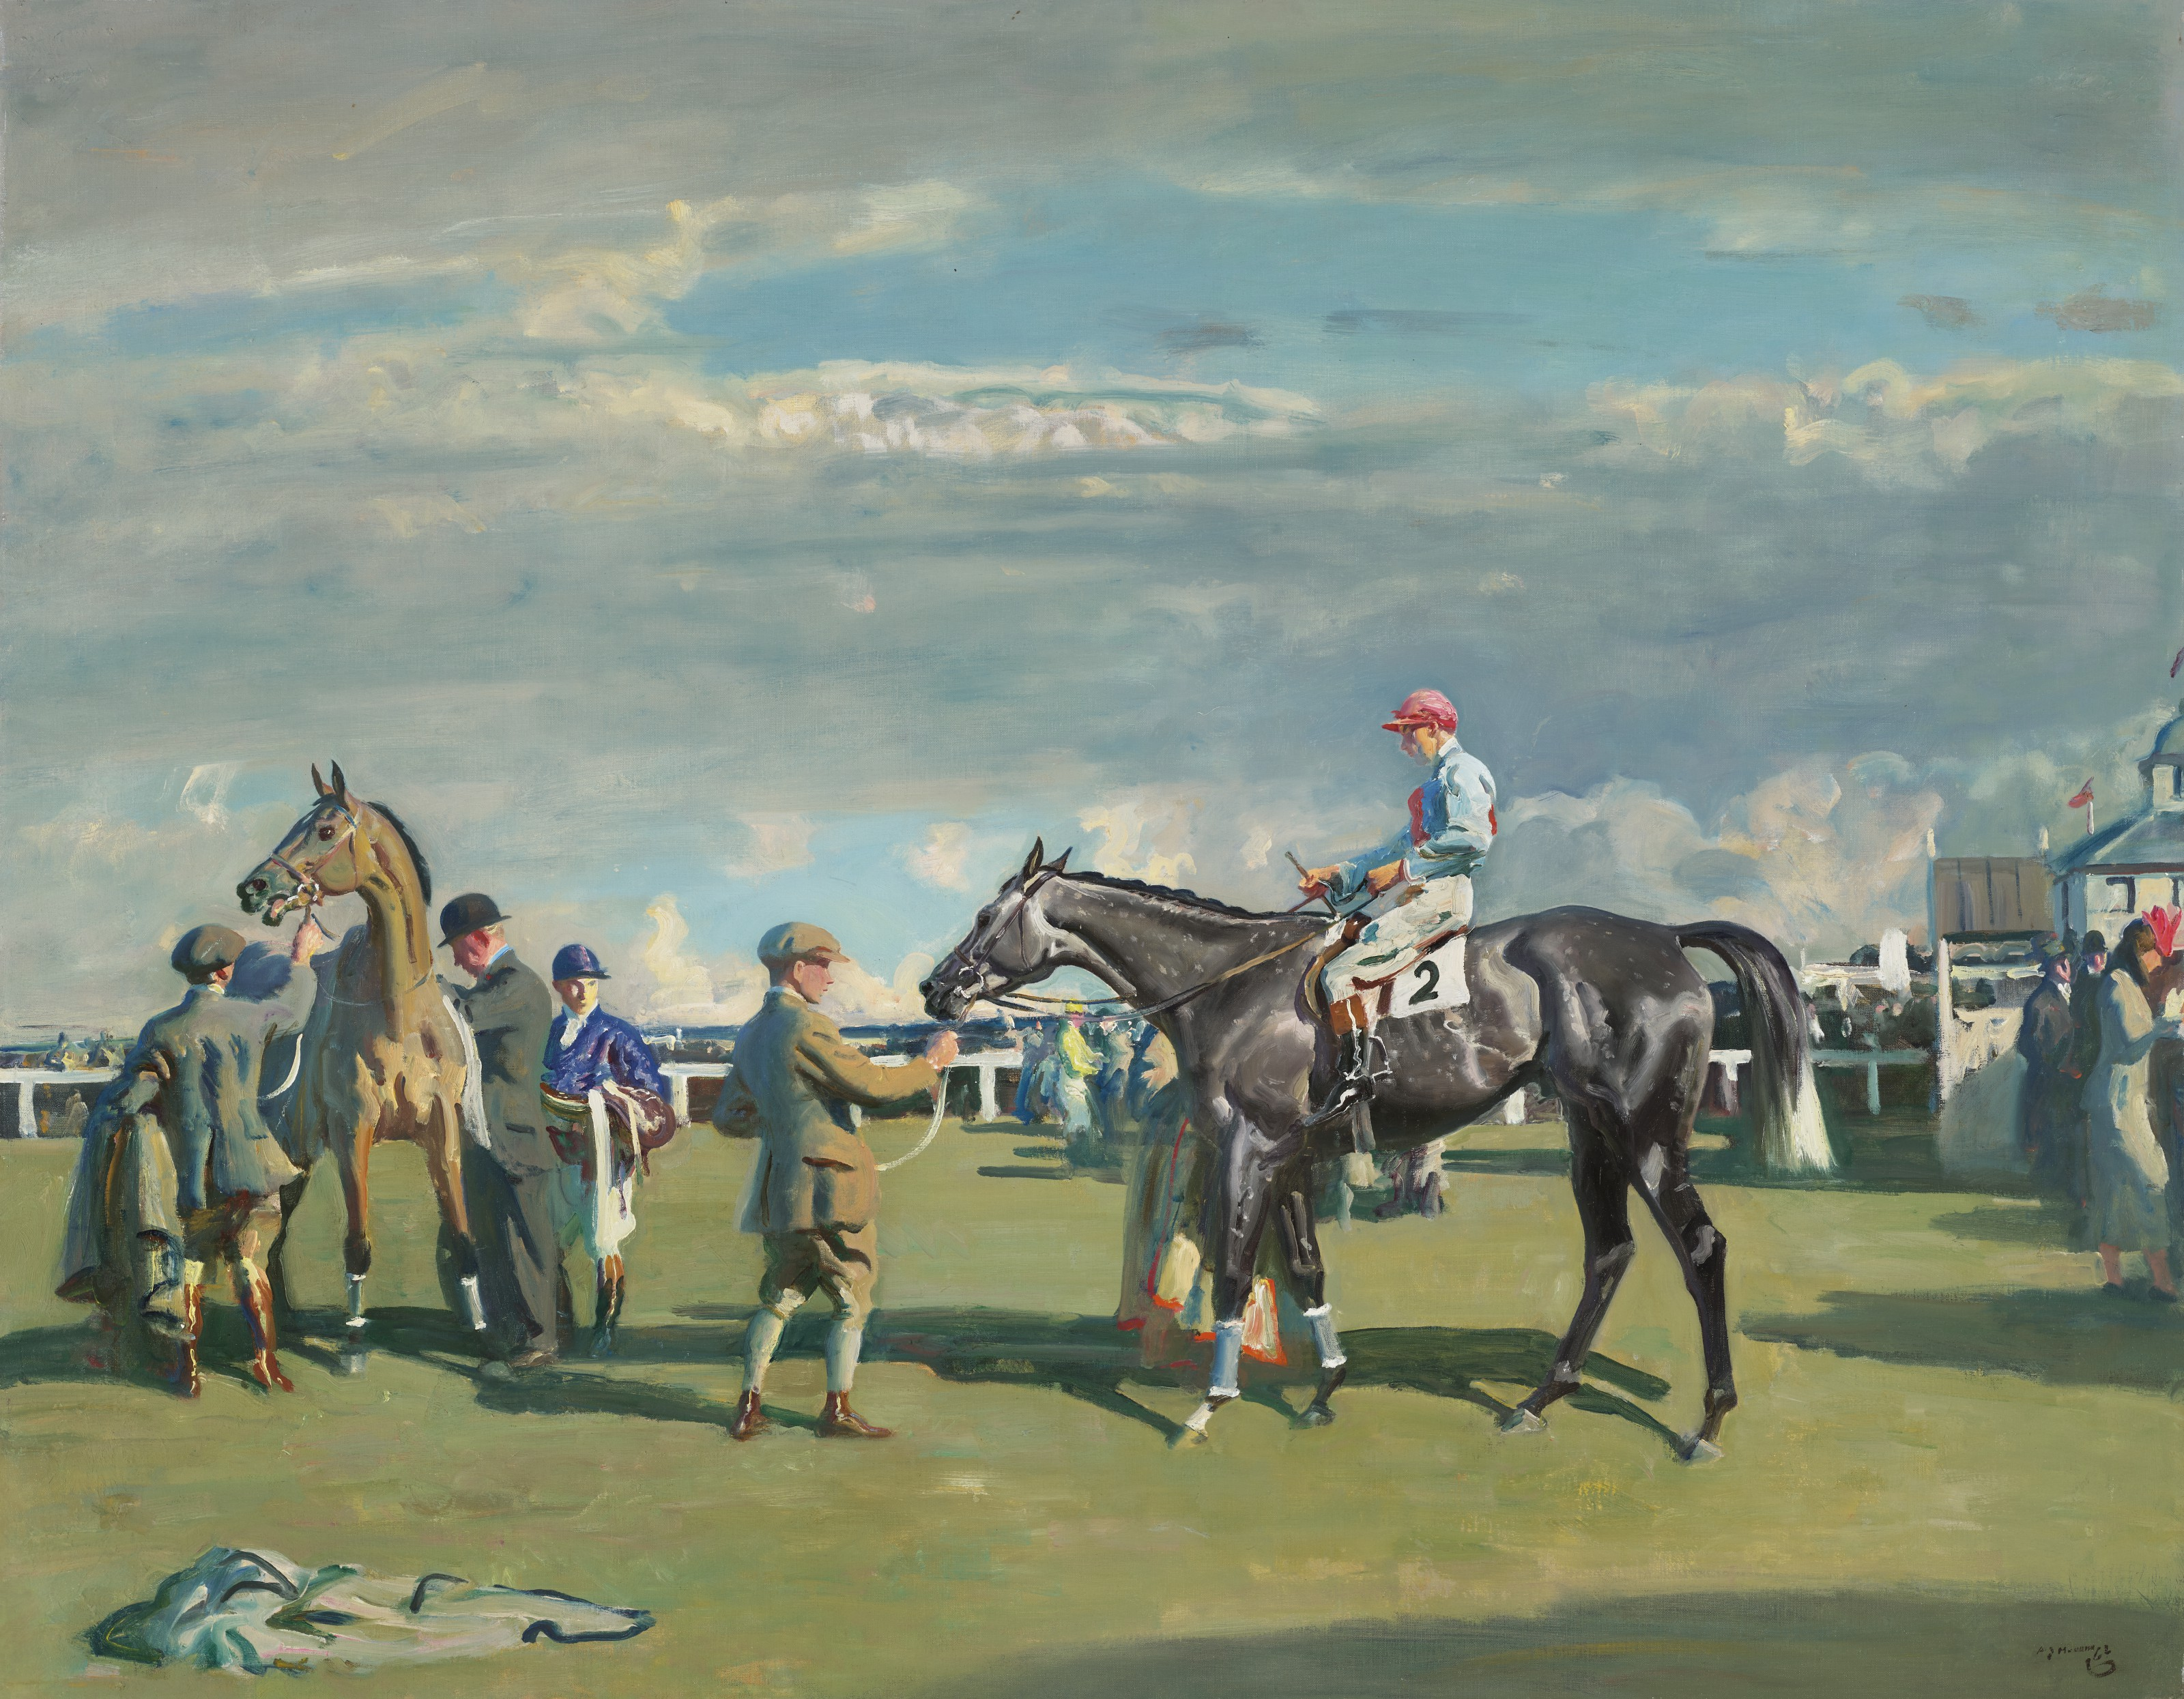 Sir Alfred James Munnings, P.R.A., R.W.S. (British, 1878-1959), After the Race, Cheltenham, 1937-1939.Oil on canvas. 36⅛ x 45½  in (91.8 x 115.6  cm). Estimate $700,000-1,000,000. Offered in European Art Part I on 13 October 2021 at Christie's in New York